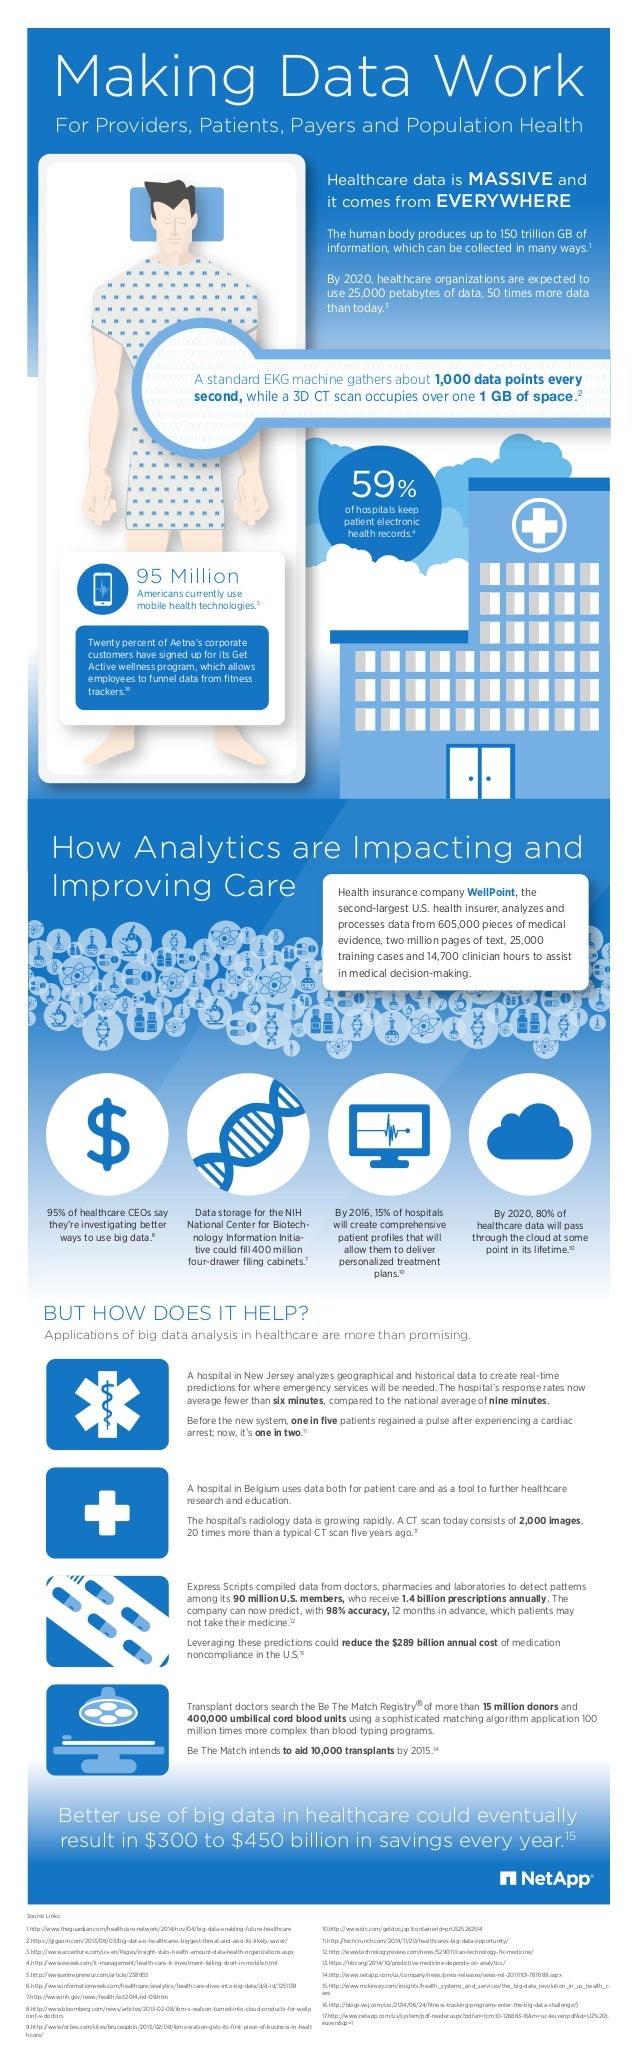 of hospitals keep patient electronic health records.4 59% Making Data Work Applications of big data analysis in healthcare...